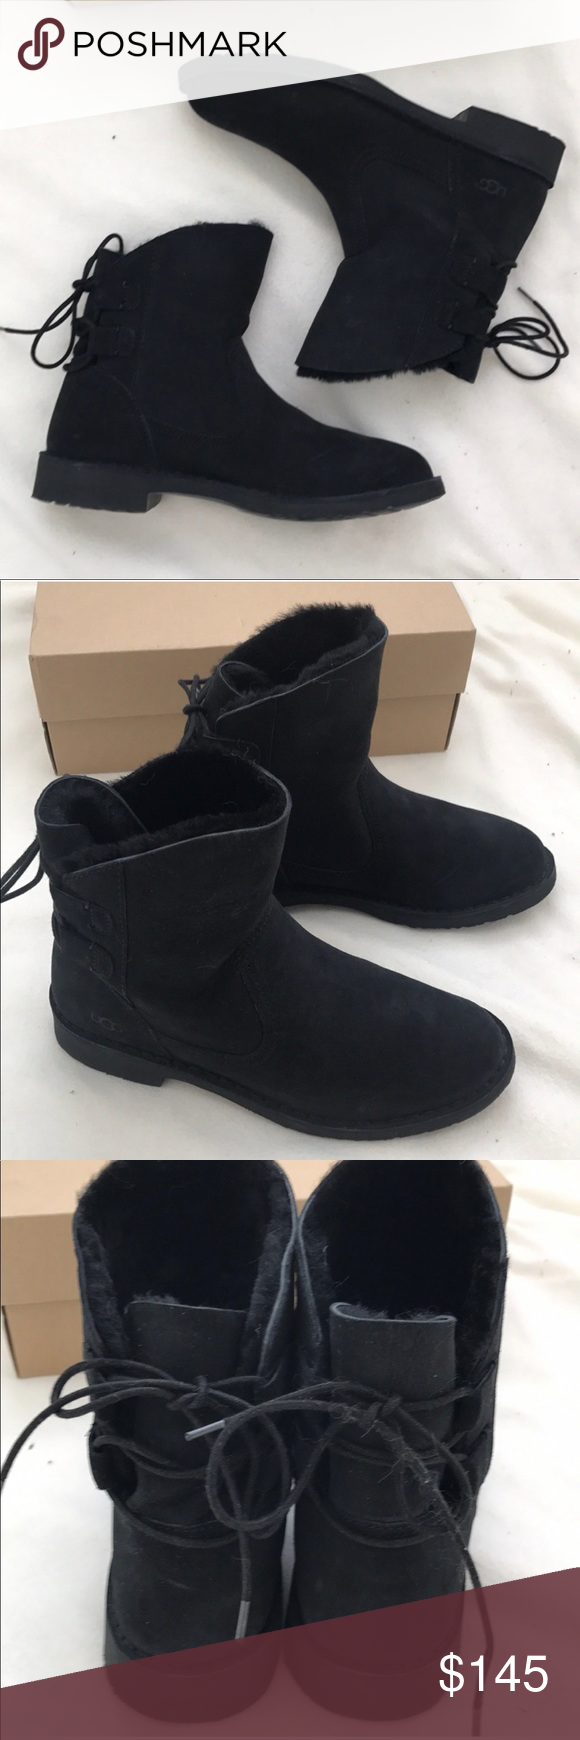 3e2f6d378af Brand new authentic Black UGG Naiyah boots New in box UGG Shoes ...